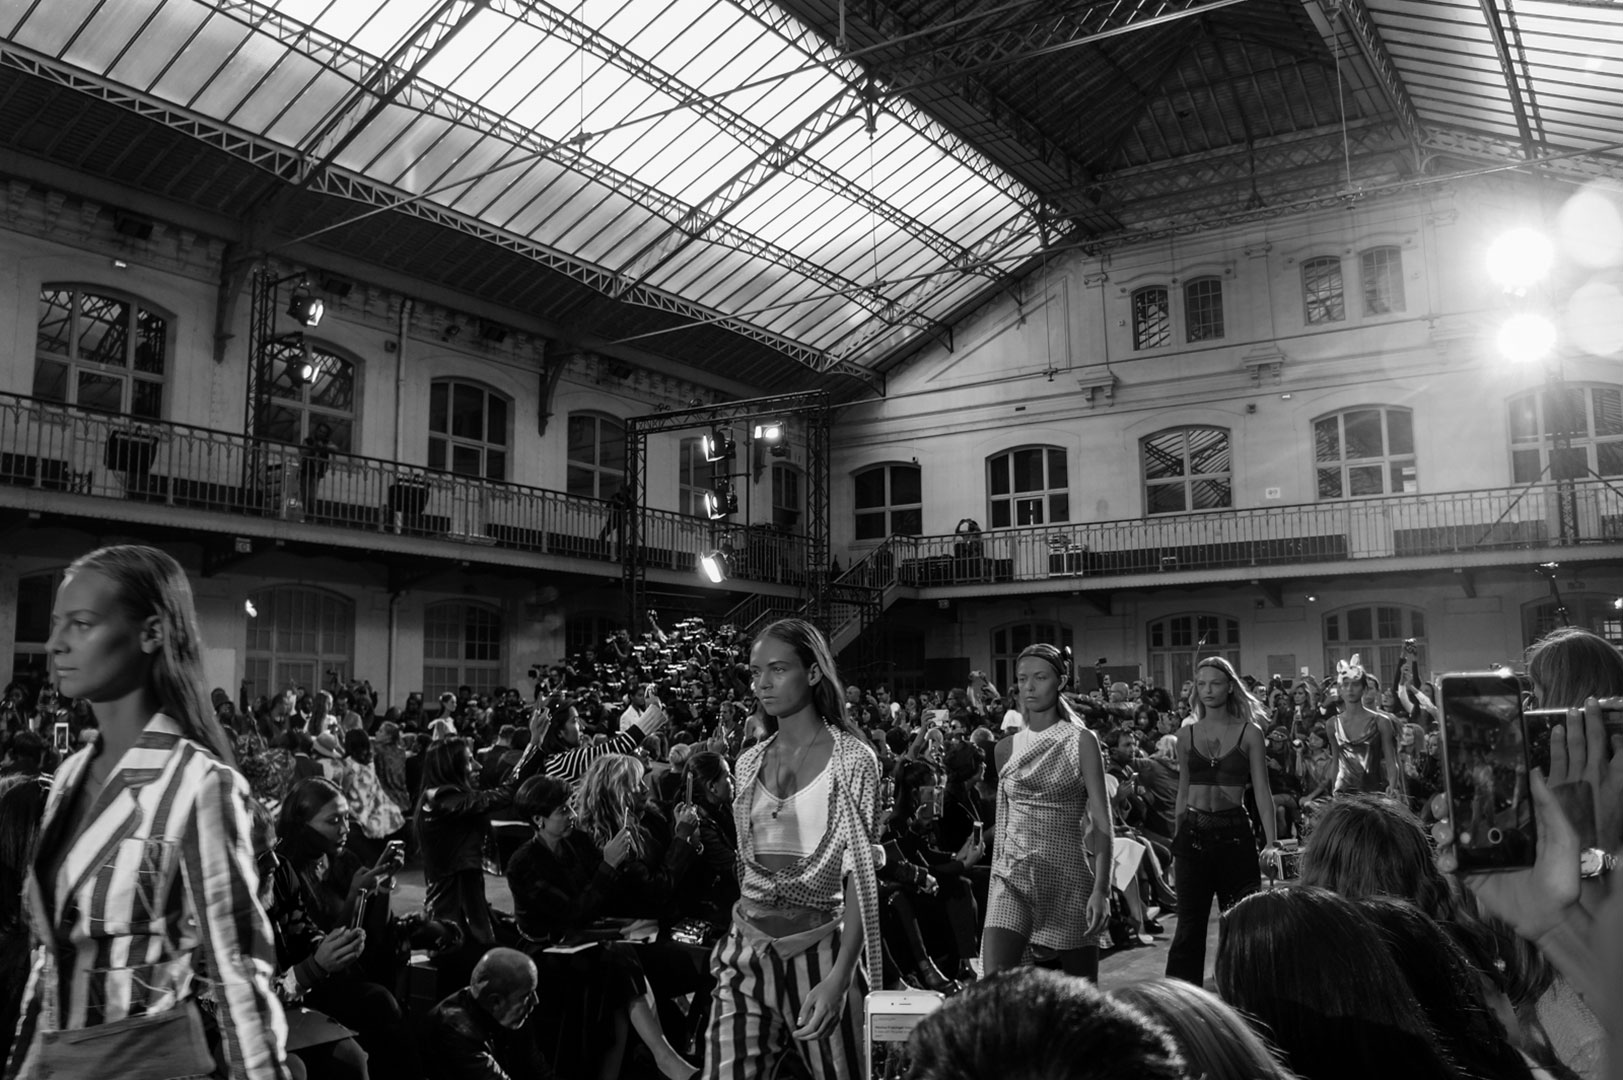 my-paris-fashion-week-diary-paris-by-polina-paraskevopoulou-all-rights-reserved-11